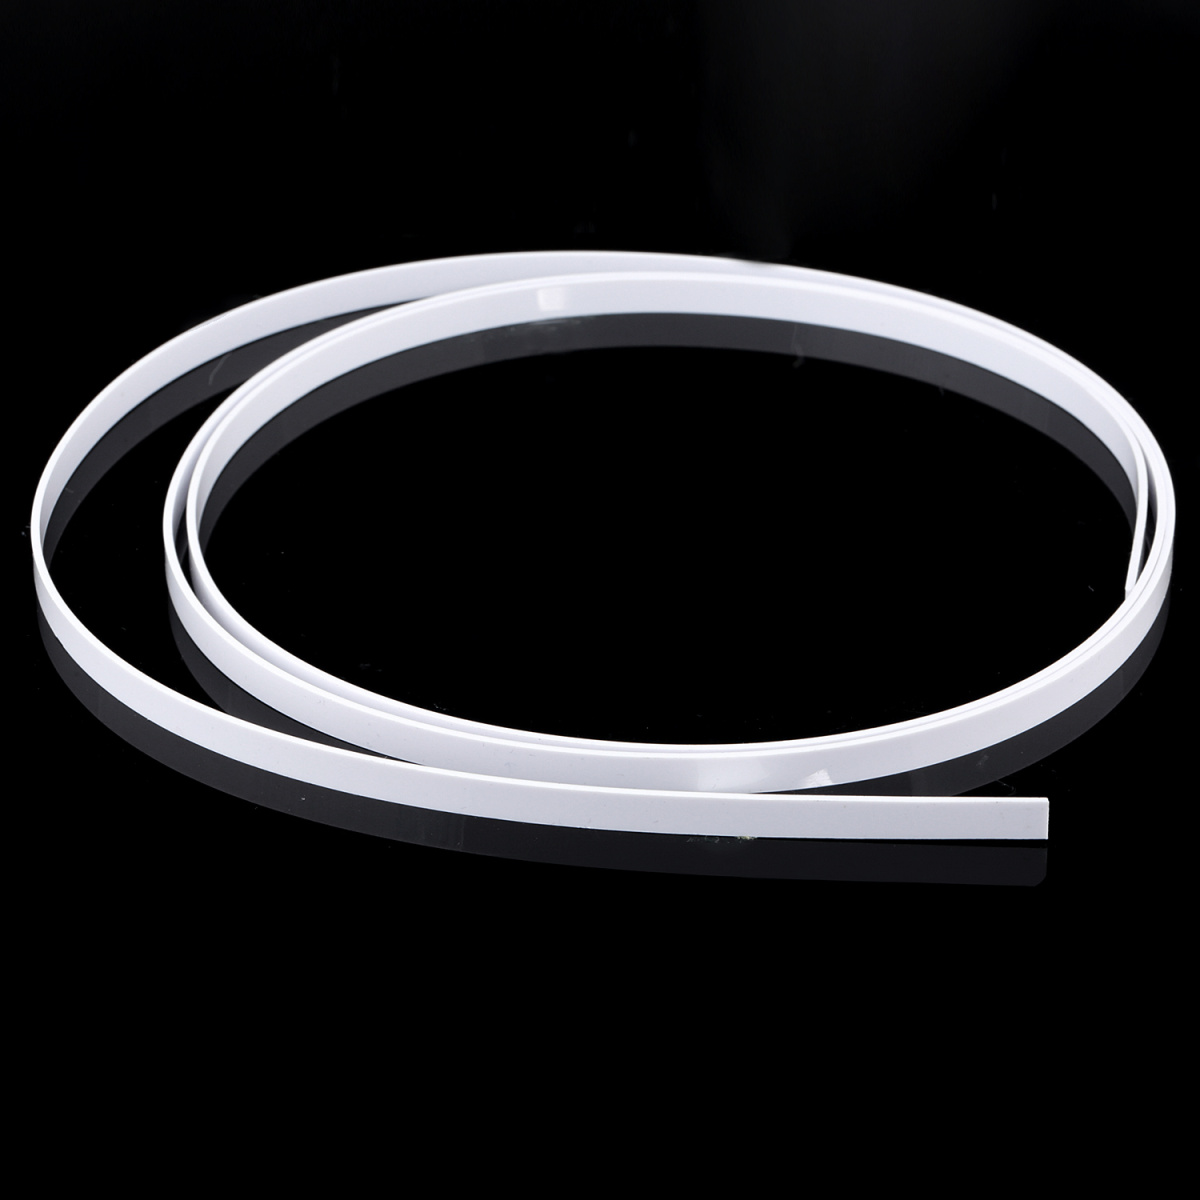 White Musiclily 1650x1x0.5mm Plastic Binding Purfling Strip for Acoustic Classical Guitar